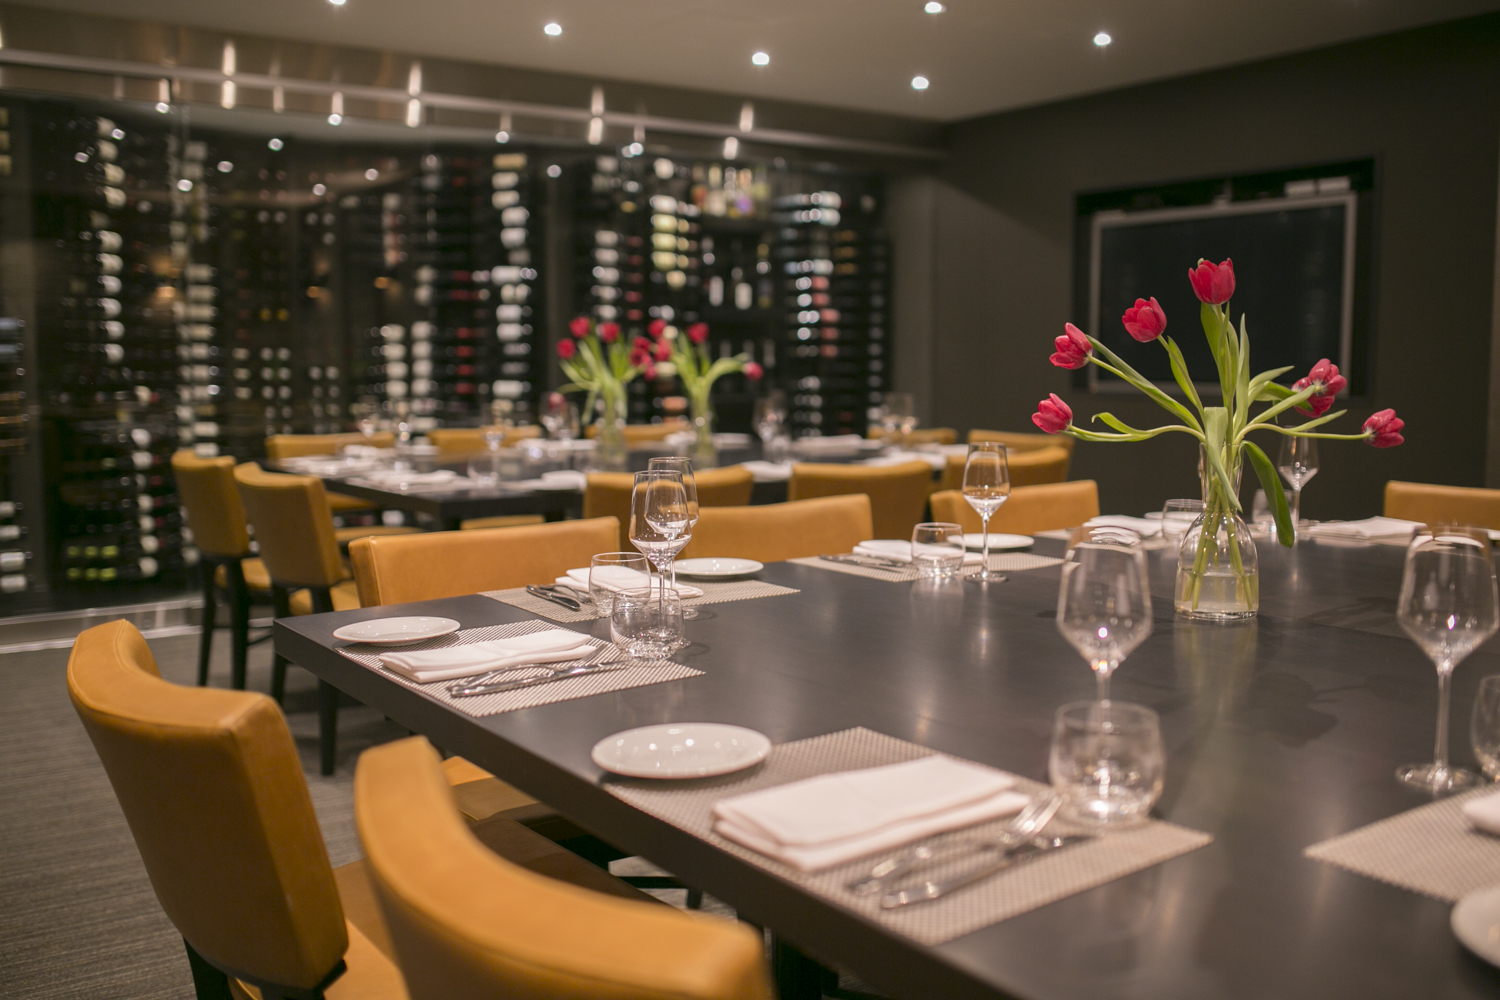 Treadwell cuisine niagara restaurant catering for Best private dining rooms toronto